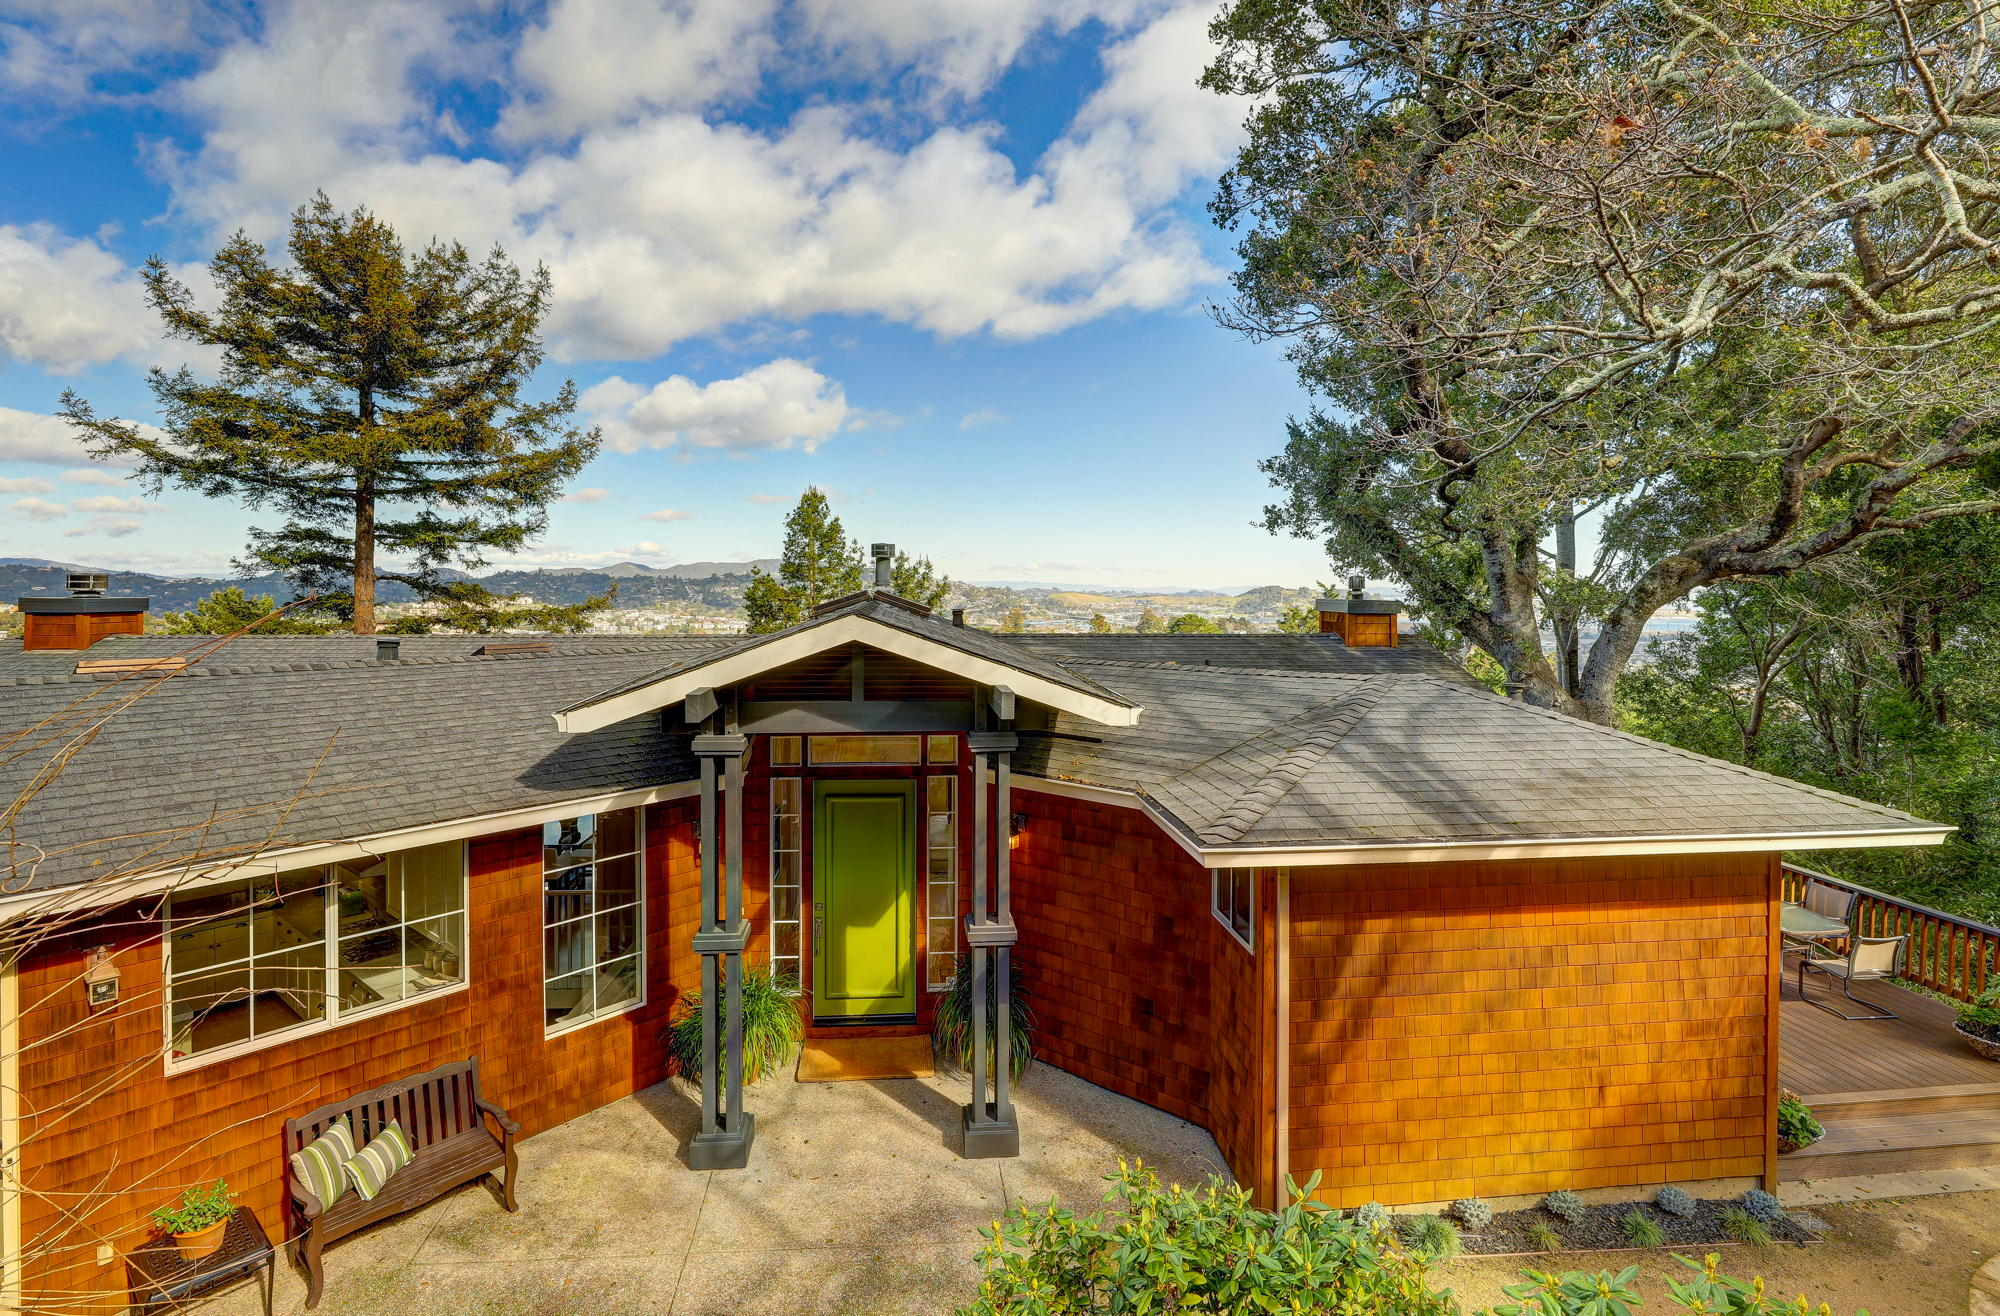 231 Marin Vista Larkspur #1 Realtor - 10 - Own Marin with Compass Real Estate.jpg